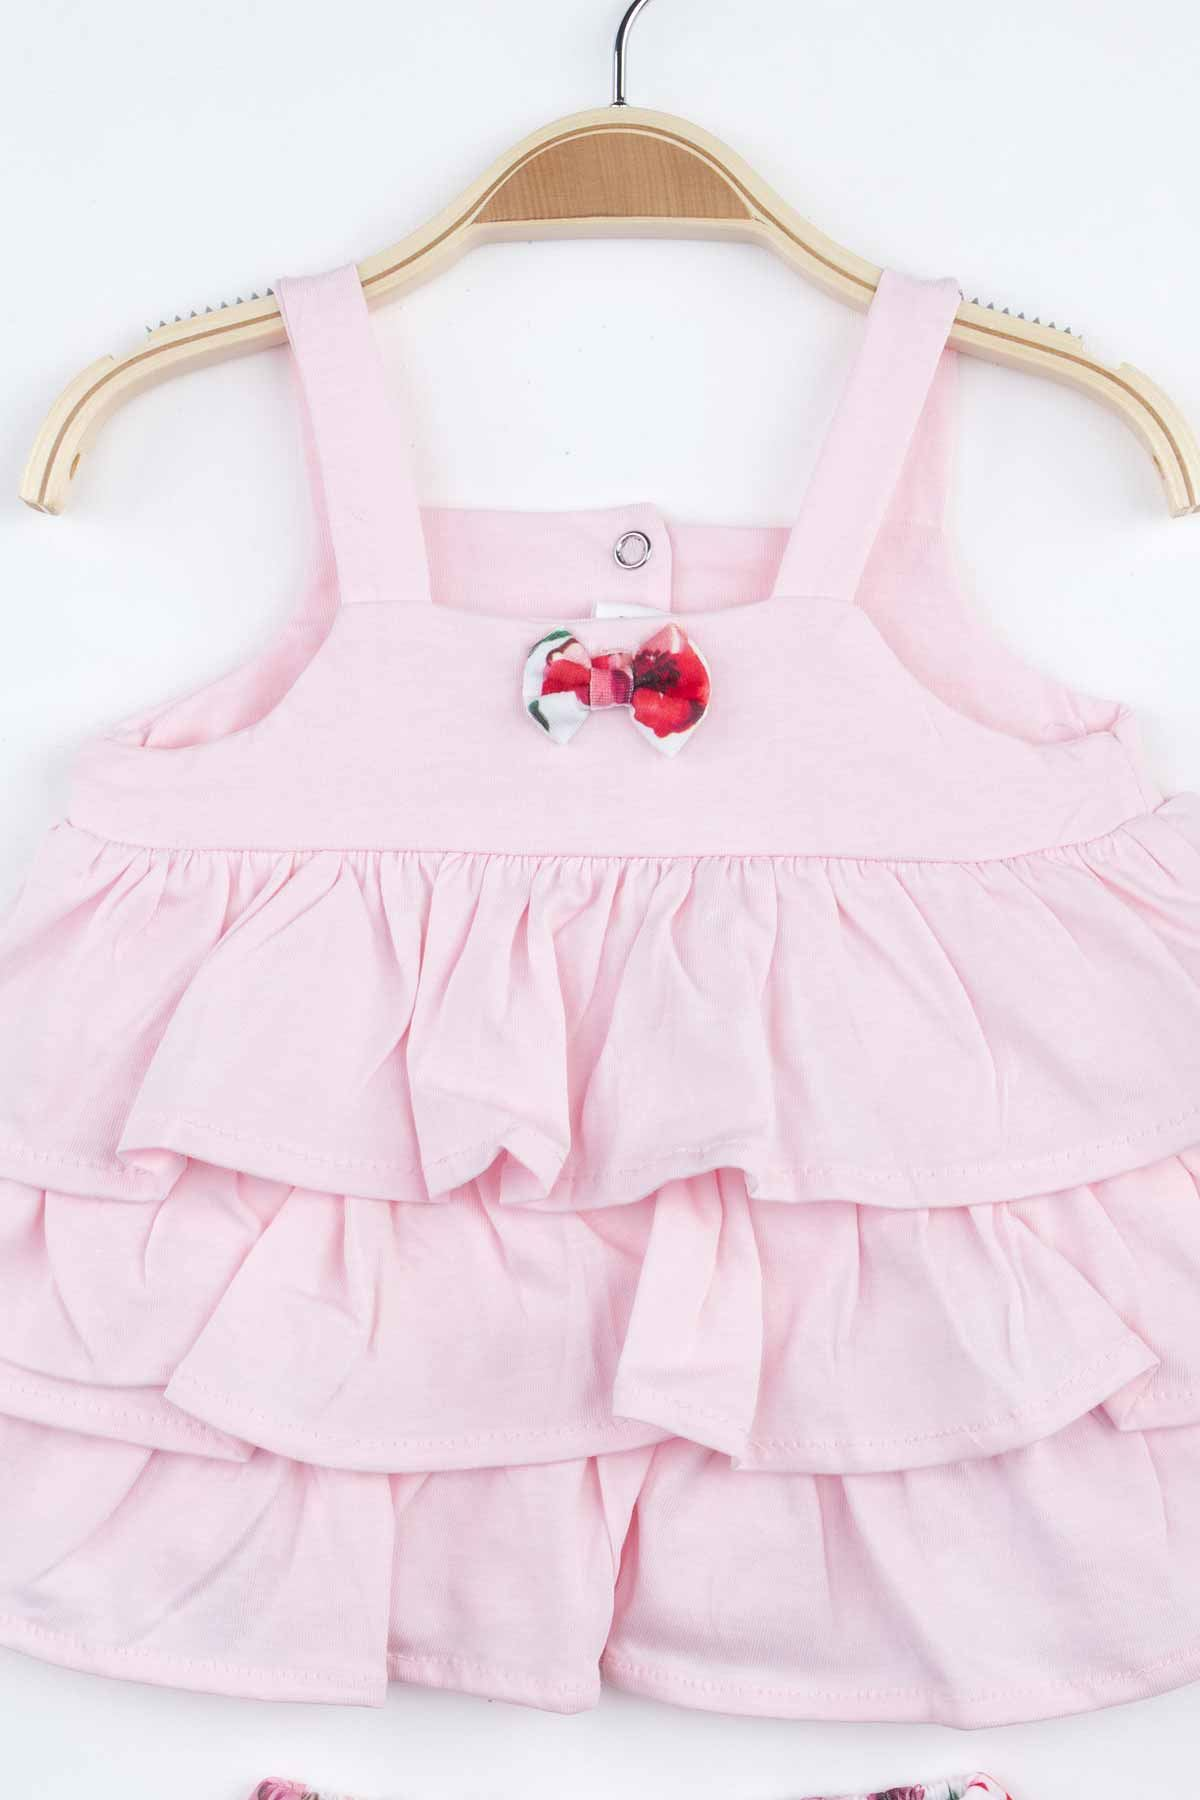 Pink Flower Baby Girl Suit Shorts Body Hair Bandana Clothing Summer Holiday Girls Babies Comfortable Daily Cotton Underwear Sets